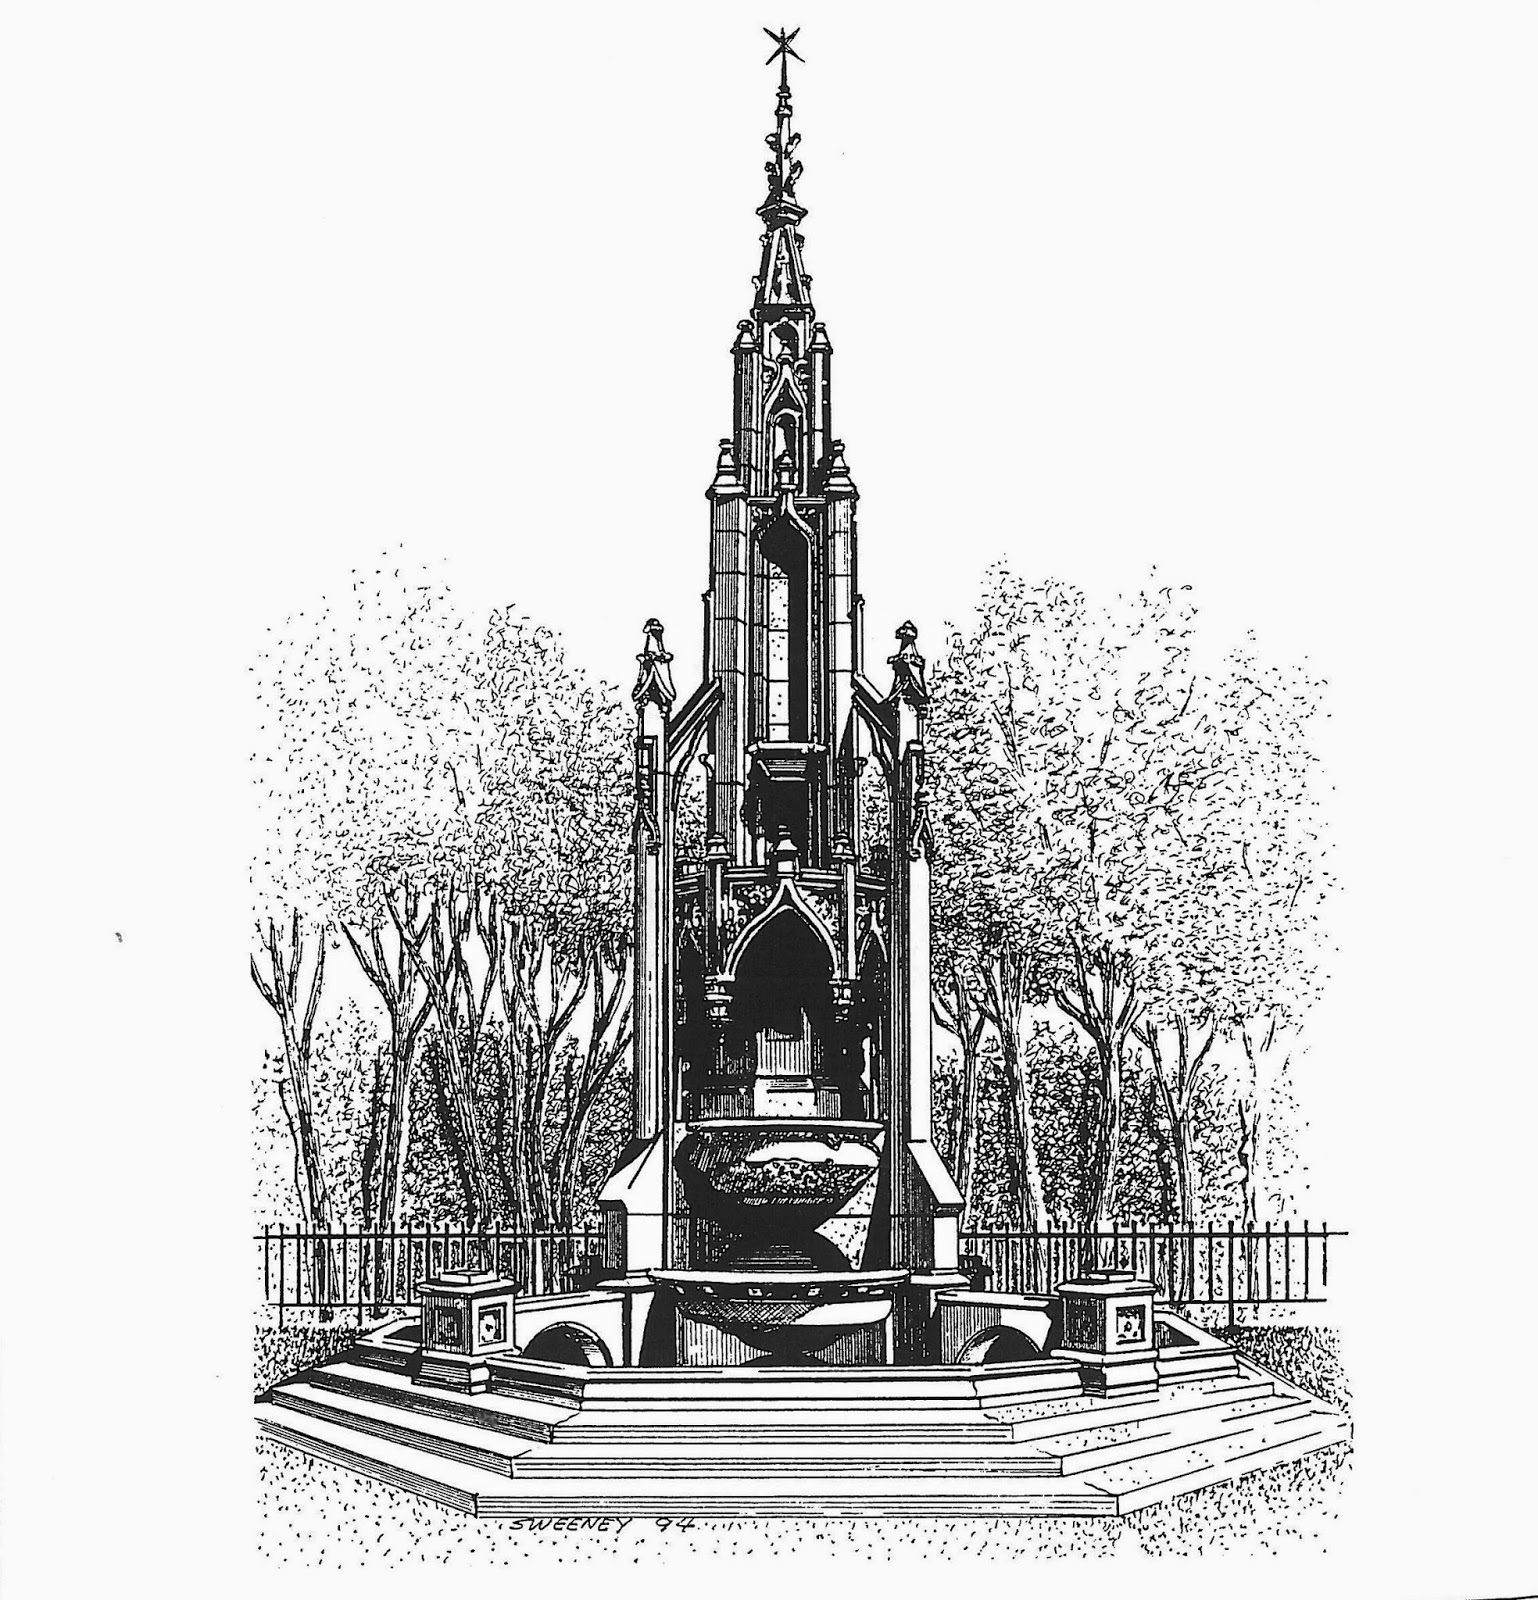 Drawing of the Waddell Fountain